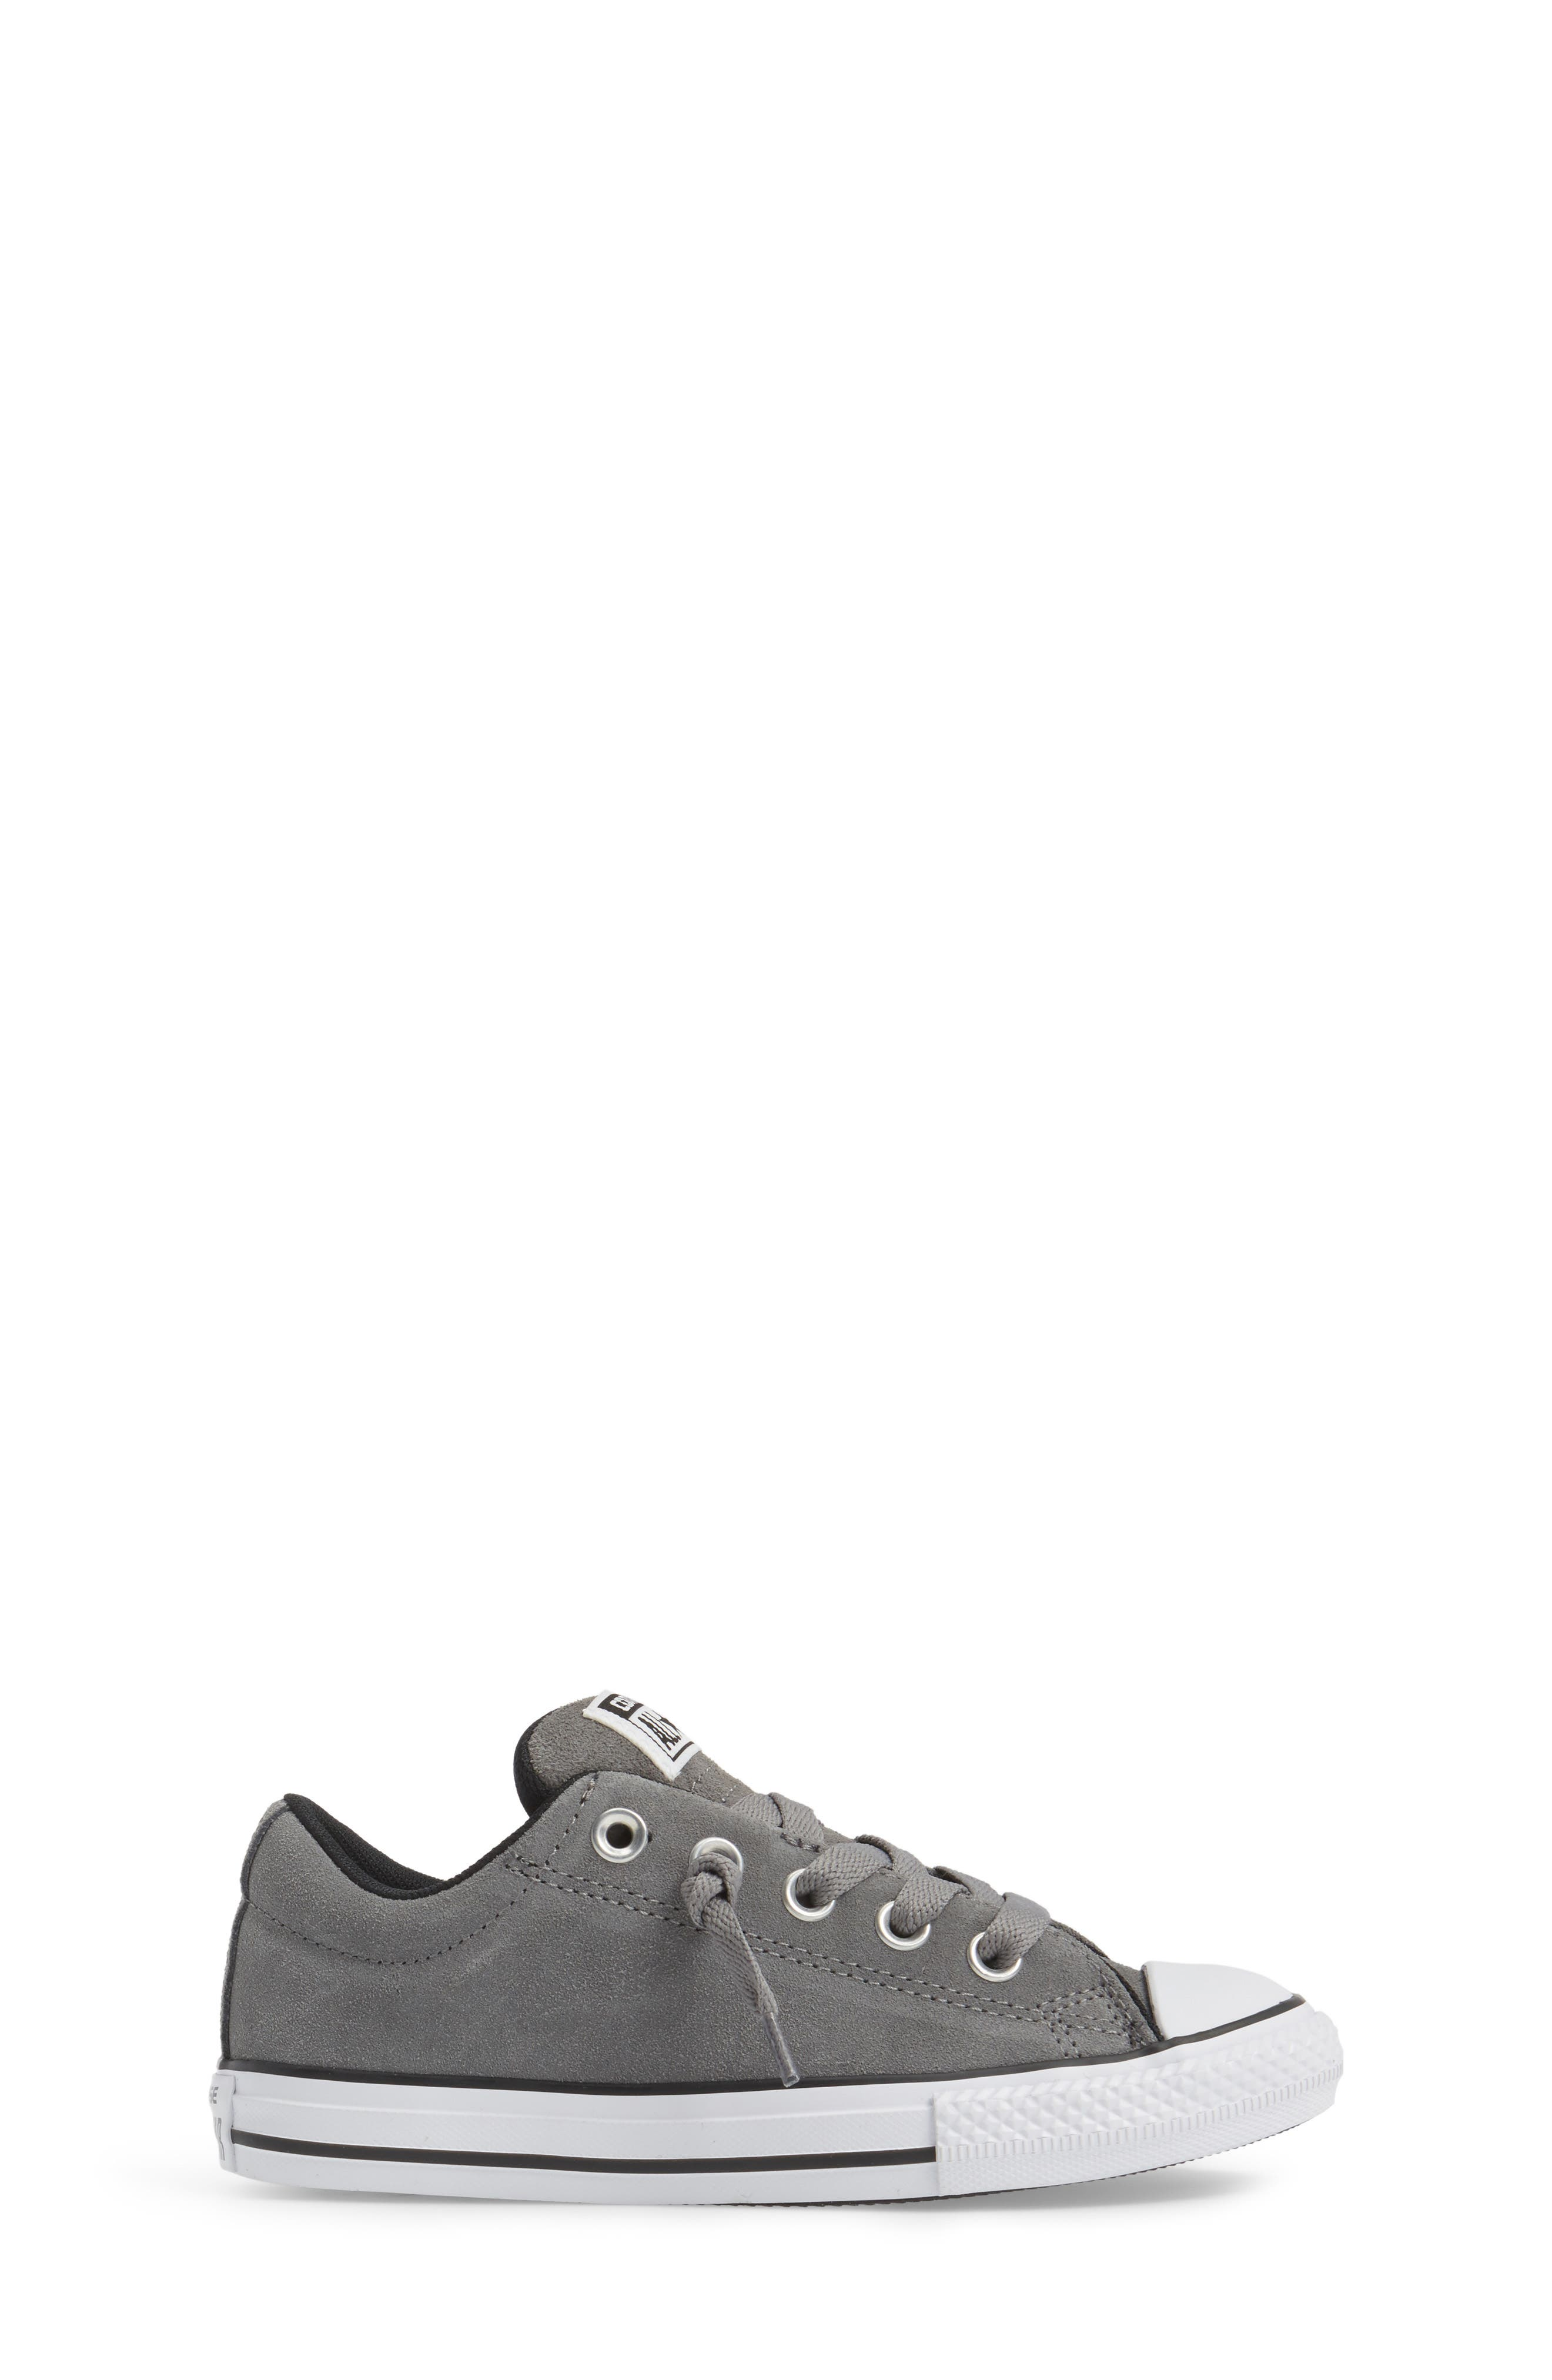 Chuck Taylor<sup>®</sup> All Star<sup>®</sup> Street Sneaker,                             Alternate thumbnail 3, color,                             038